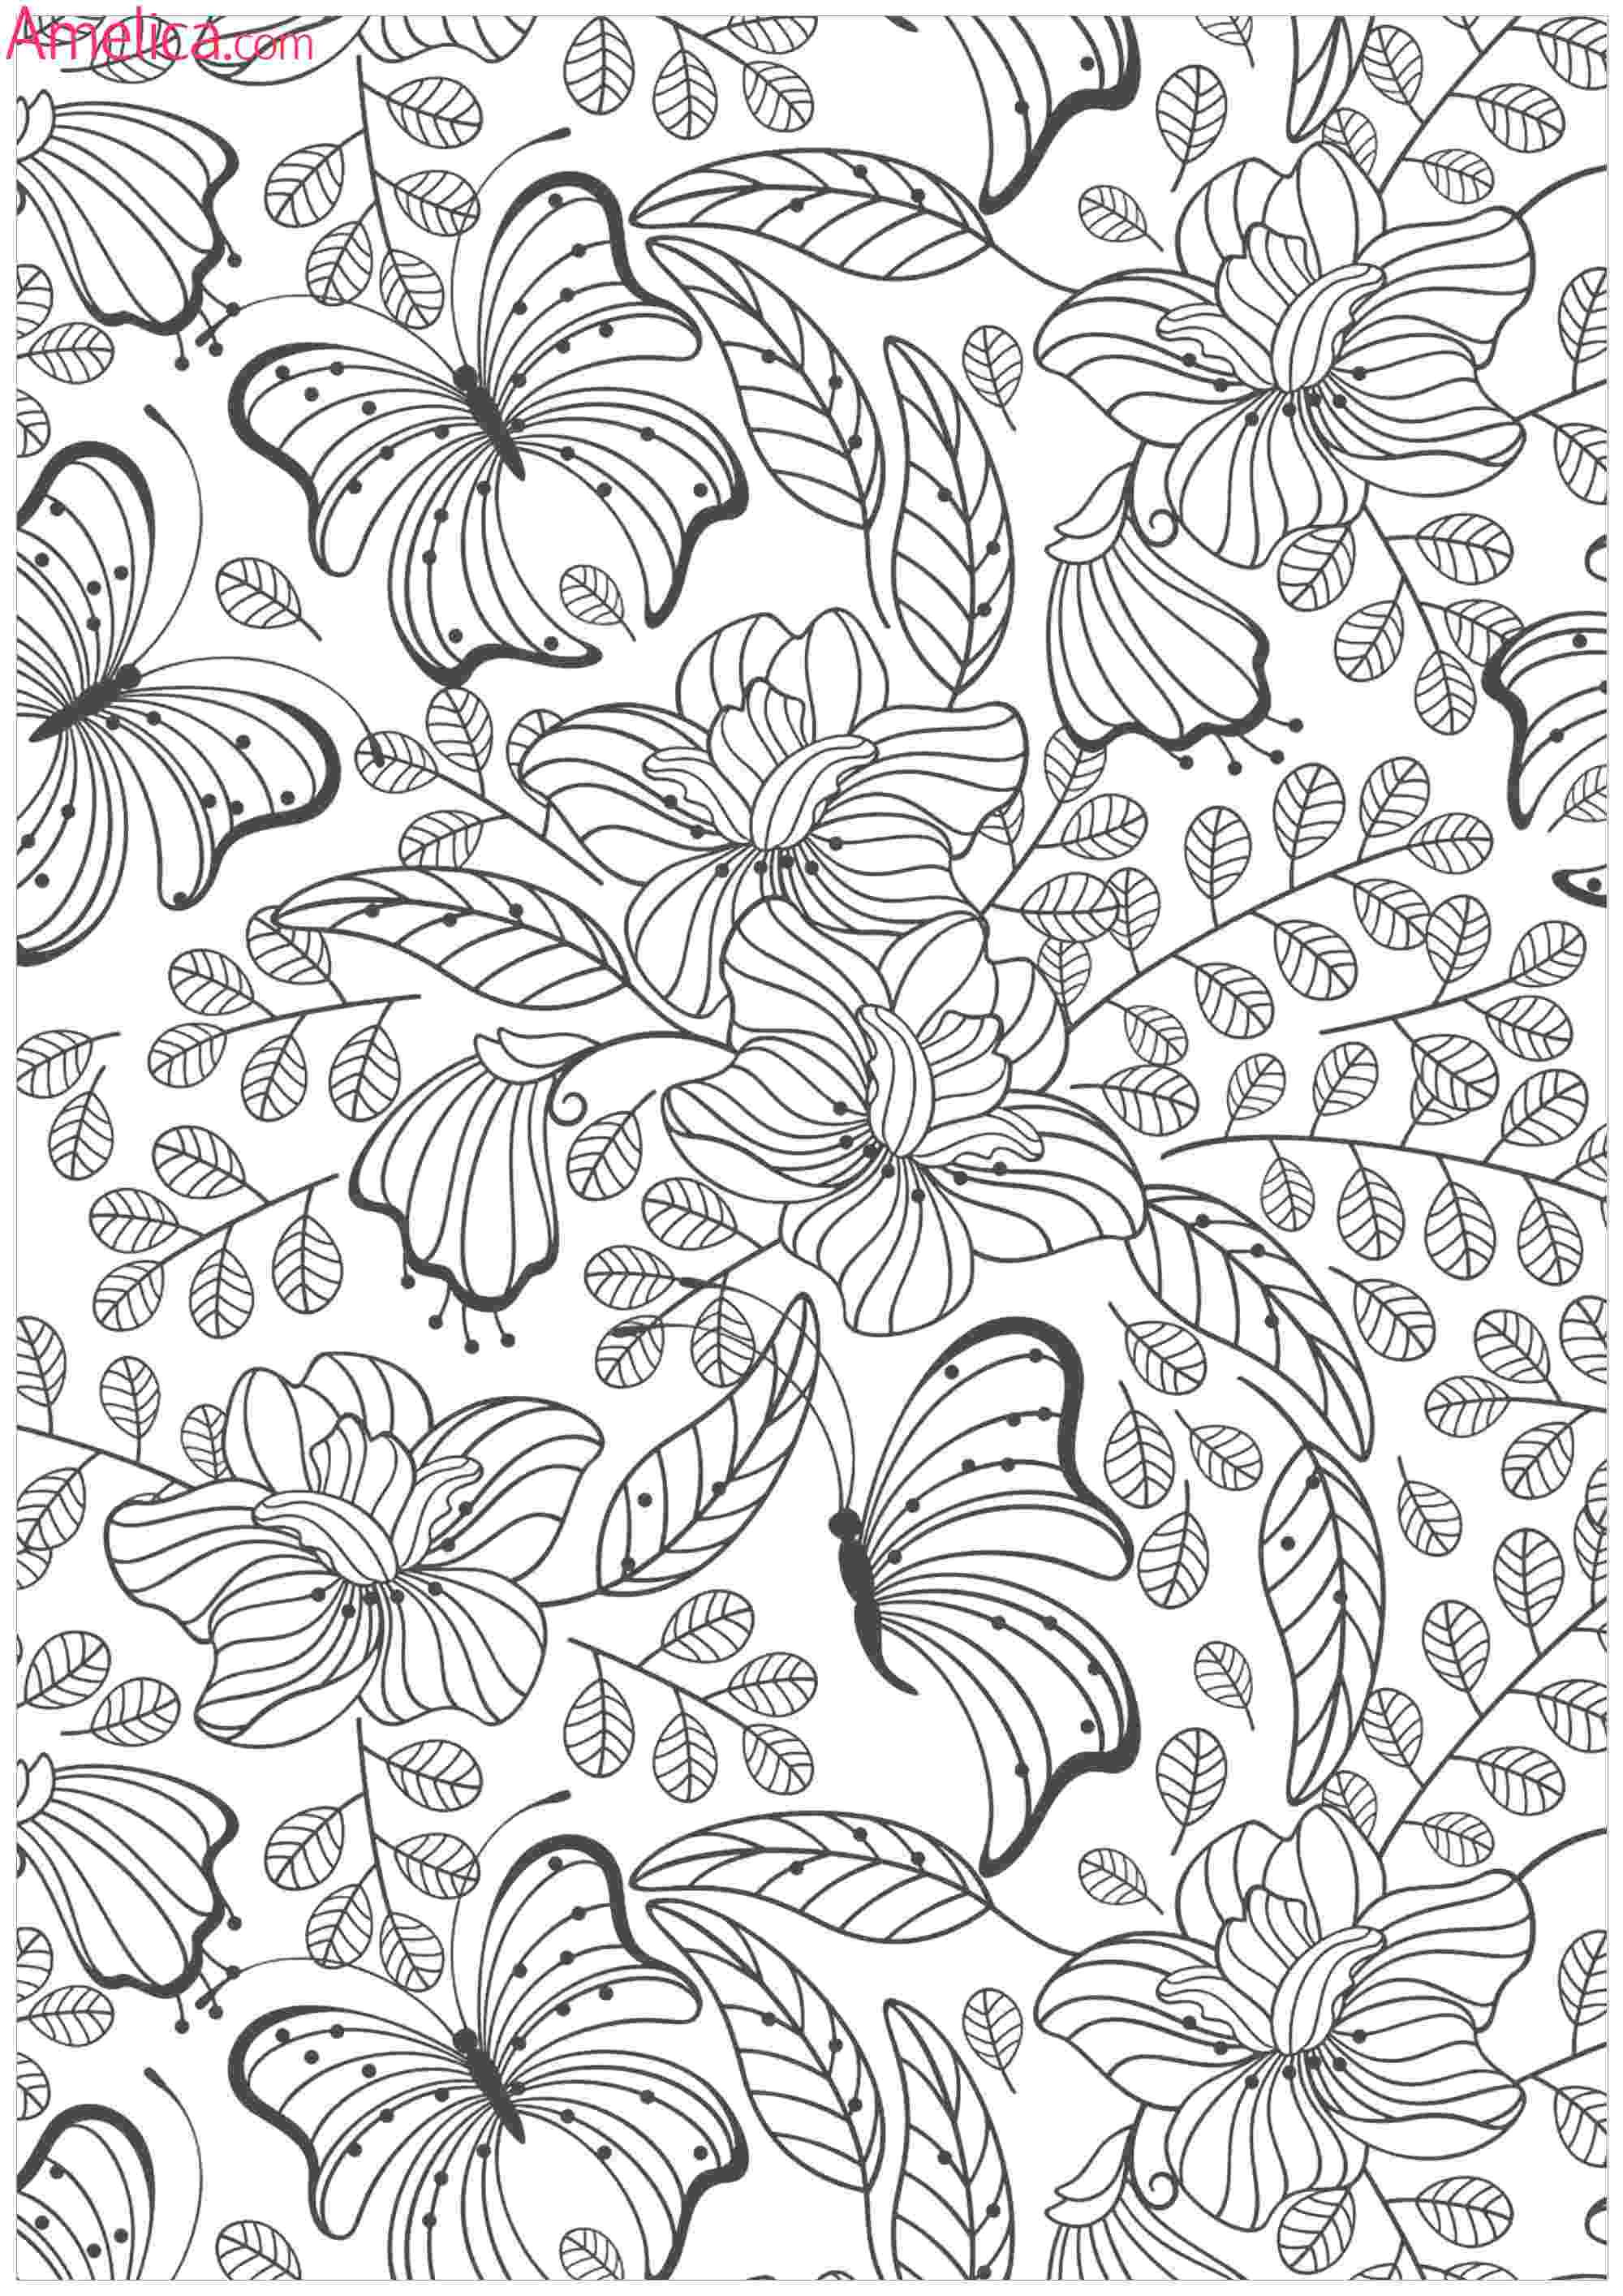 botany coloring book download botany coloring book download my jaksuka blog botany download book coloring